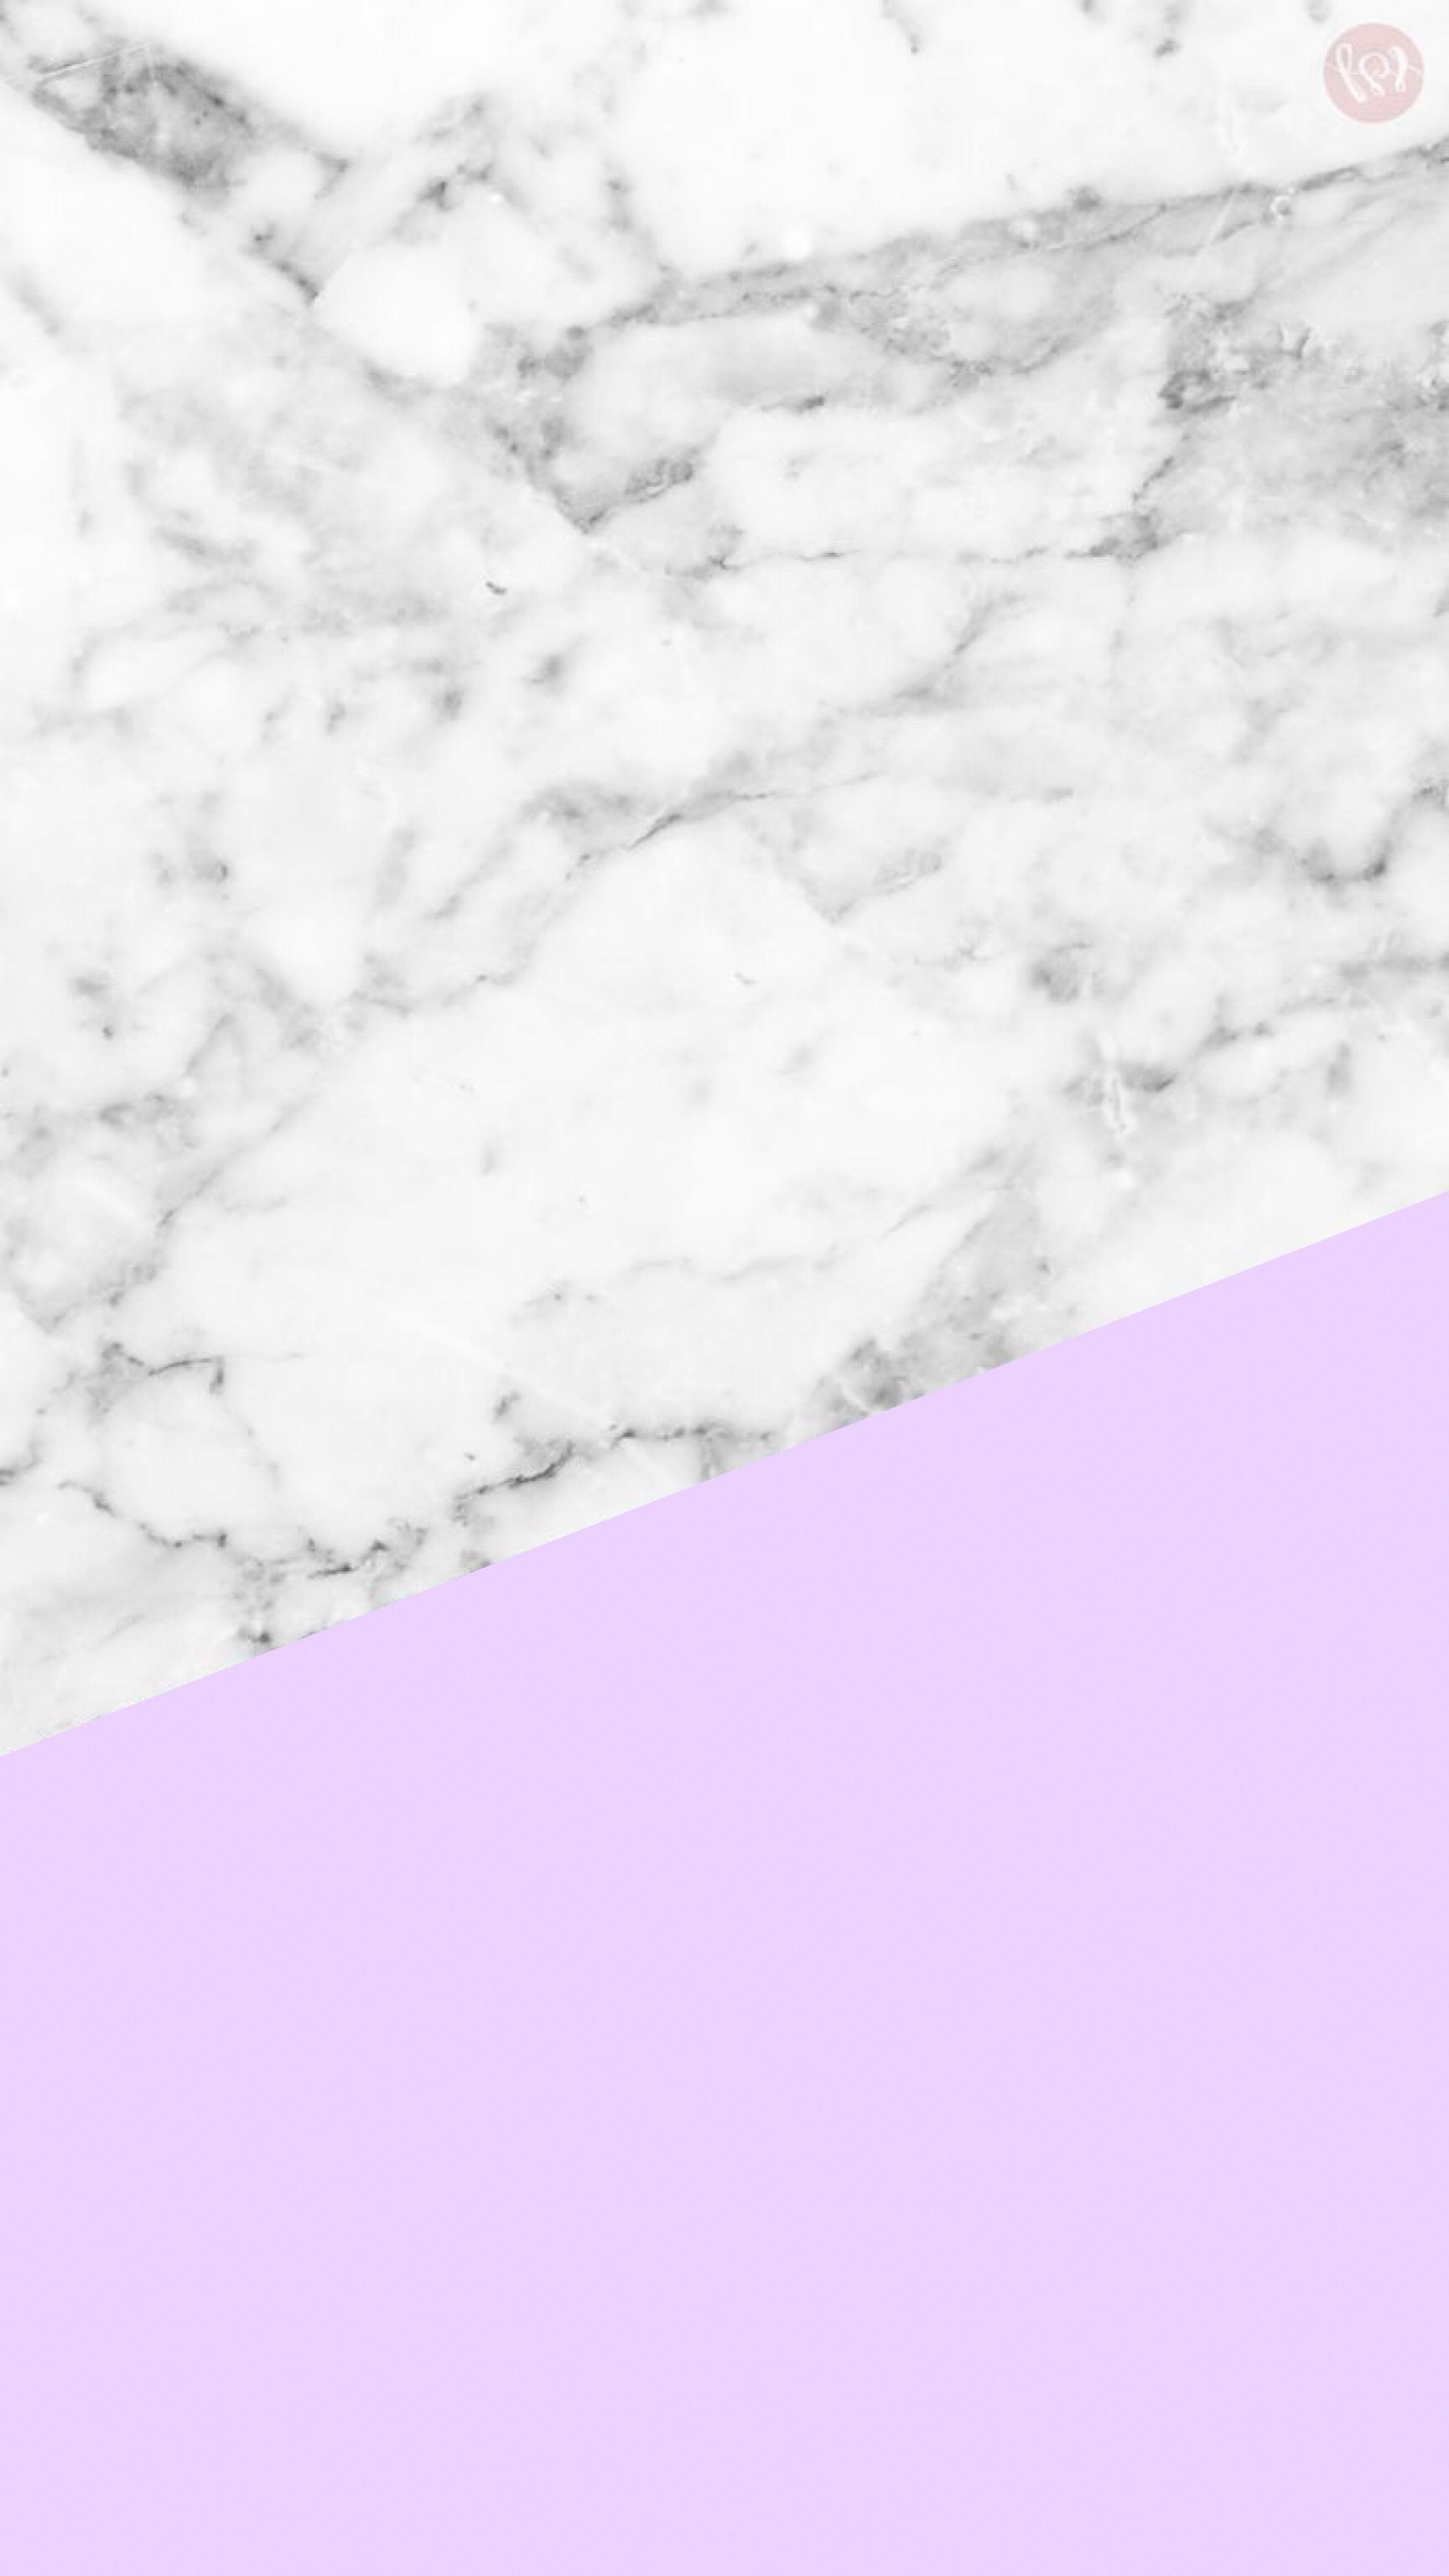 Pin By Katty On Oboi Marble Iphone Wallpaper Queens Wallpaper Pastel Iphone Wallpaper